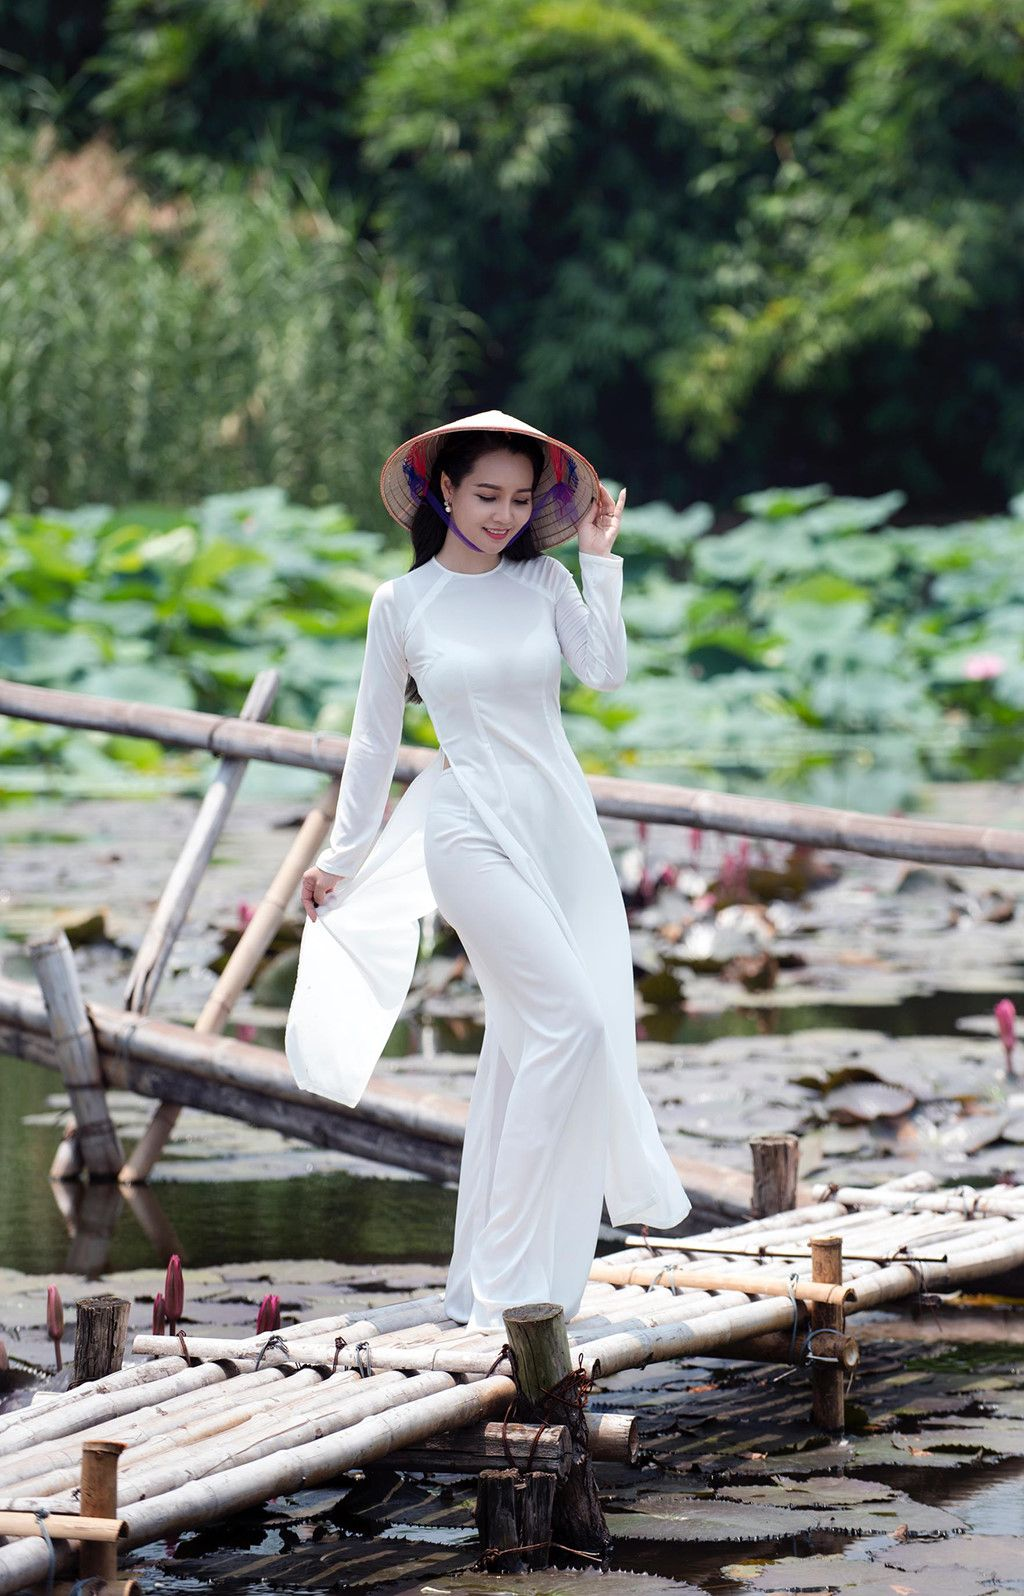 Pin by pieter steensma on aodai pinterest dresses long a and